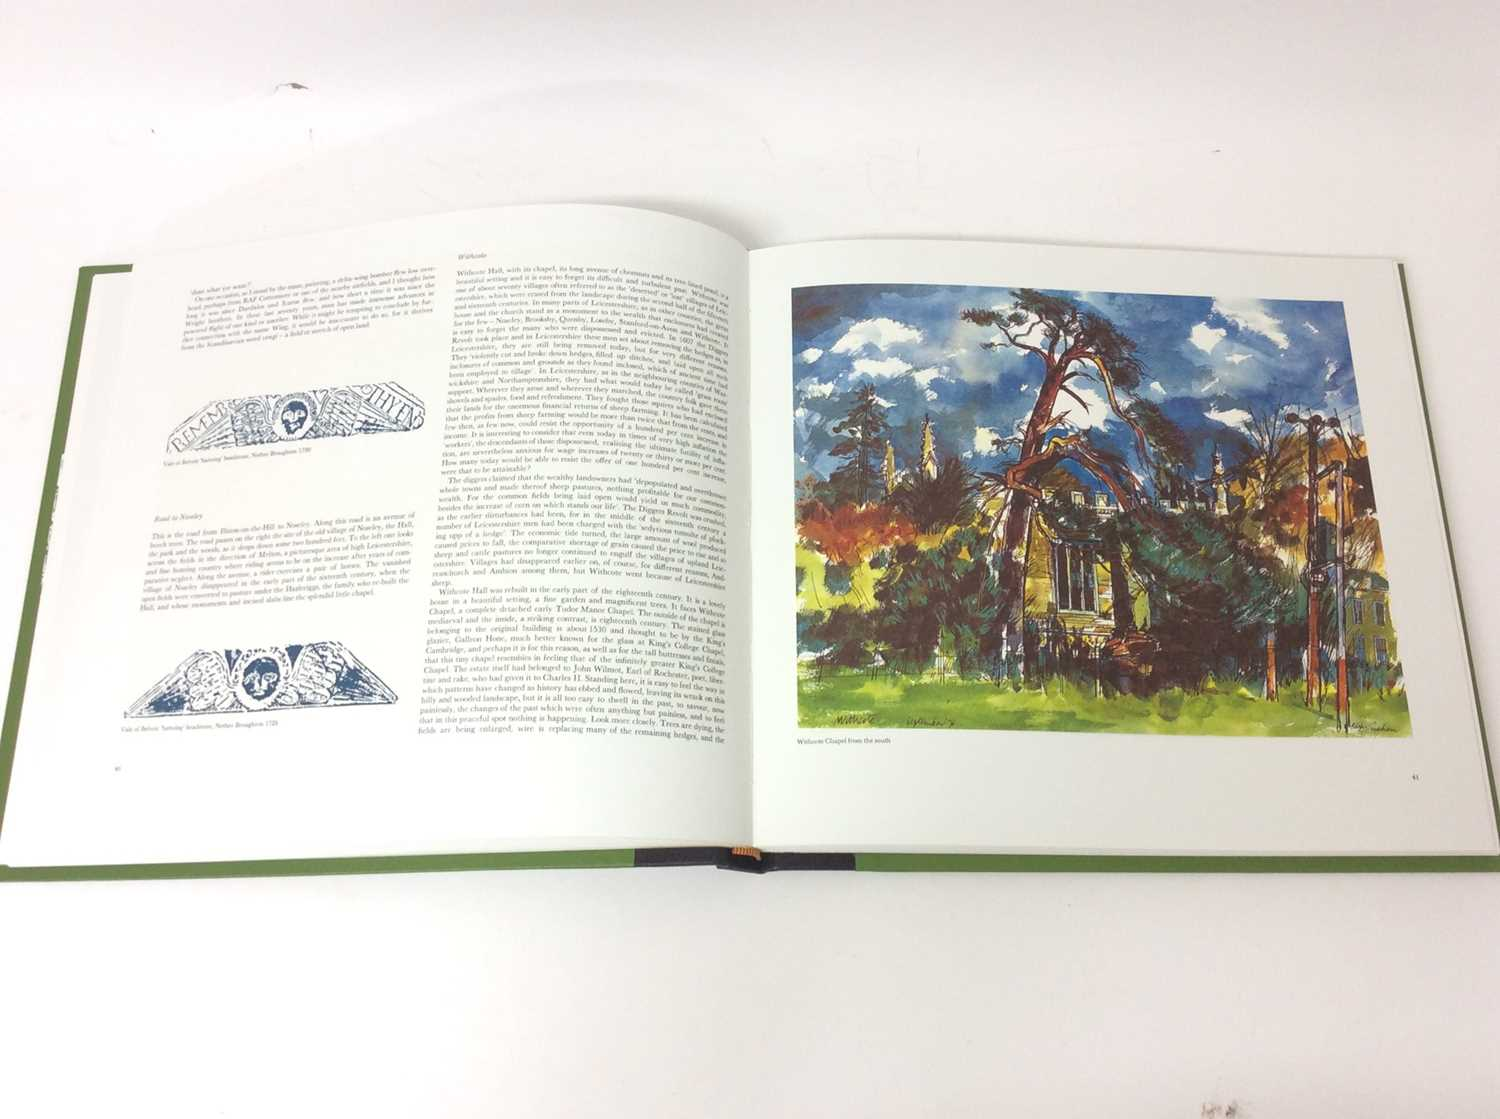 Rigby Graham, Leicestershire, Sycamore Press / Gadsby Gallery, Leicester 1980, folio book in slip co - Image 7 of 10